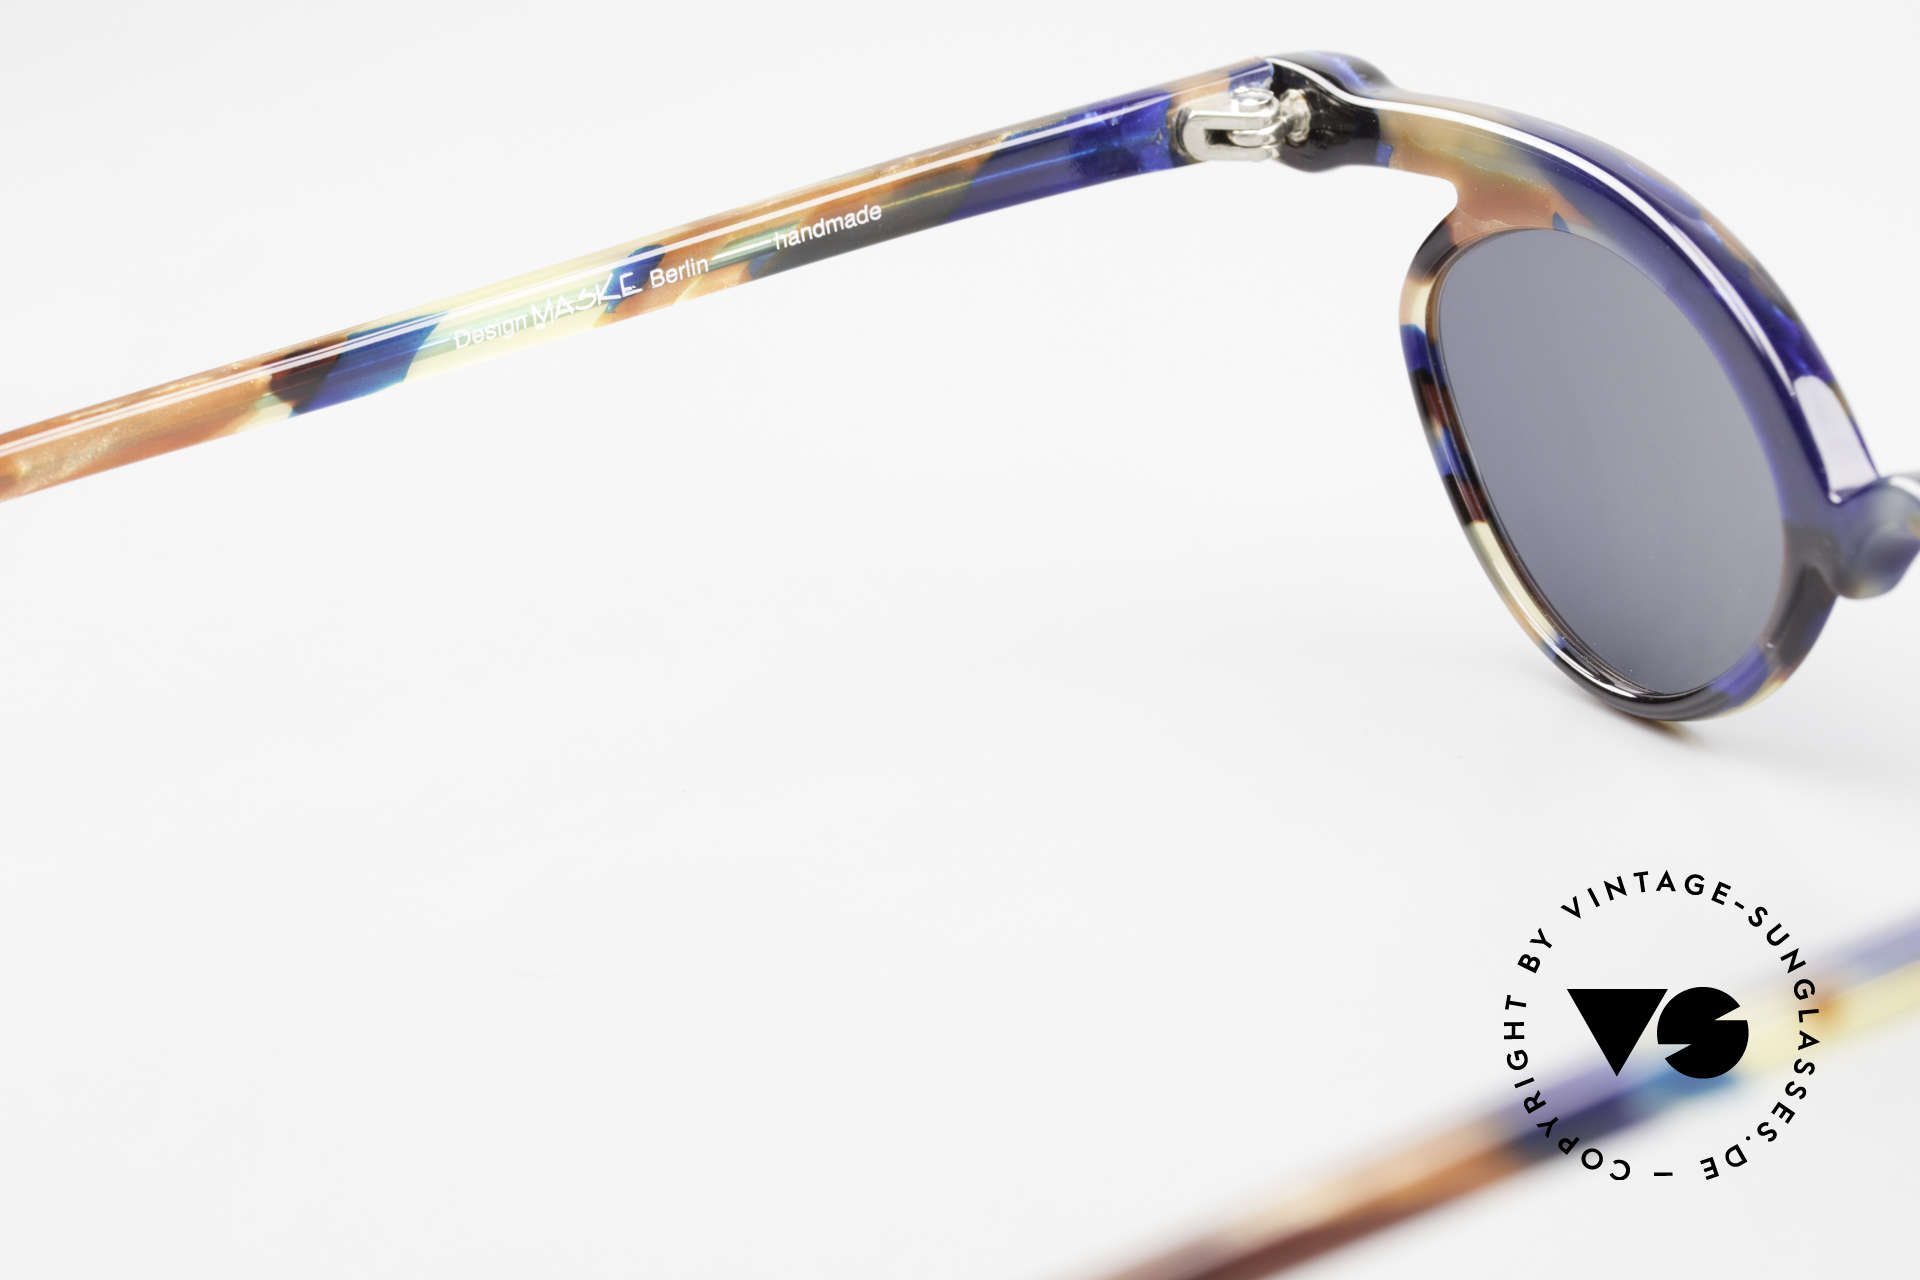 Design Maske Berlin Niobe Artful 90's Ladies Sunglasses, the sun lenses could be replaced with prescriptions, Made for Women